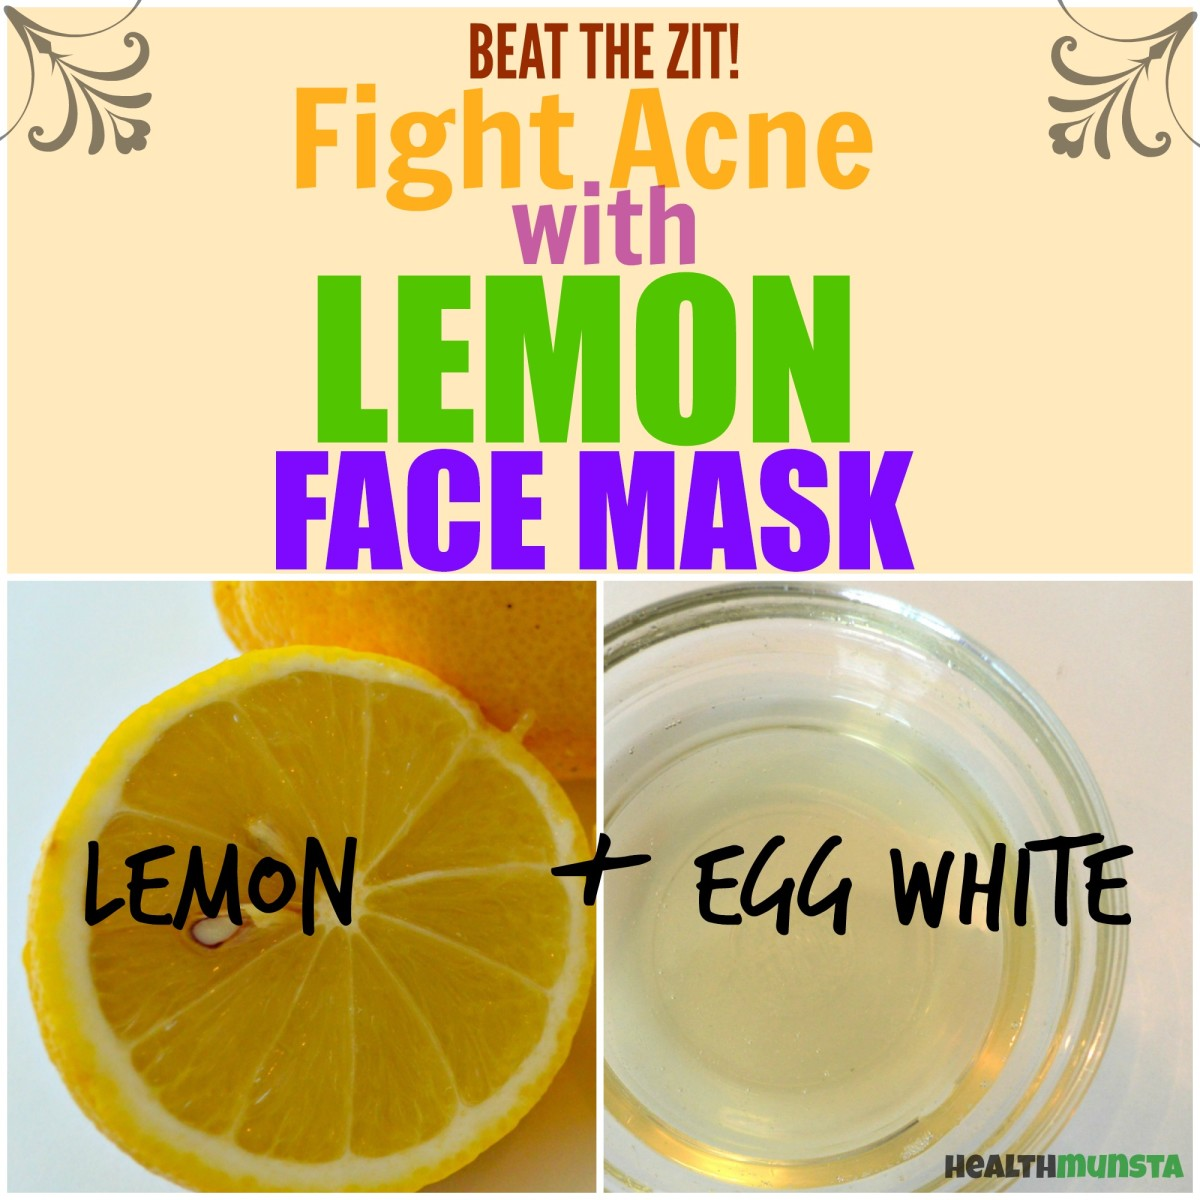 The citric acid in lemon juice can help you beat acne. Try this simple, no-nonsense lemon face mask to banish the zits.